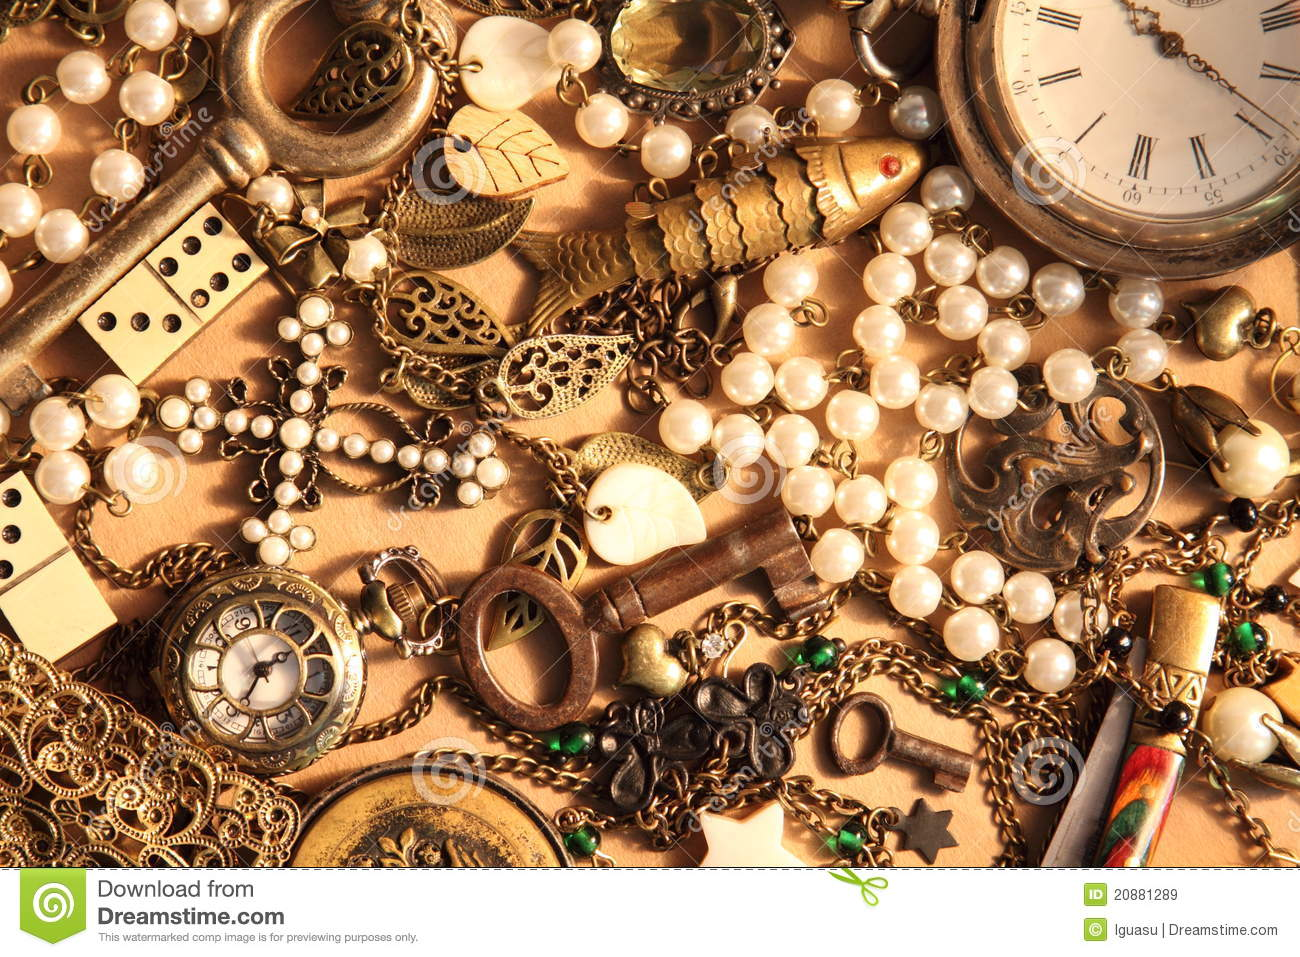 Vintage things and jewelry royalty free stock images image 20881289